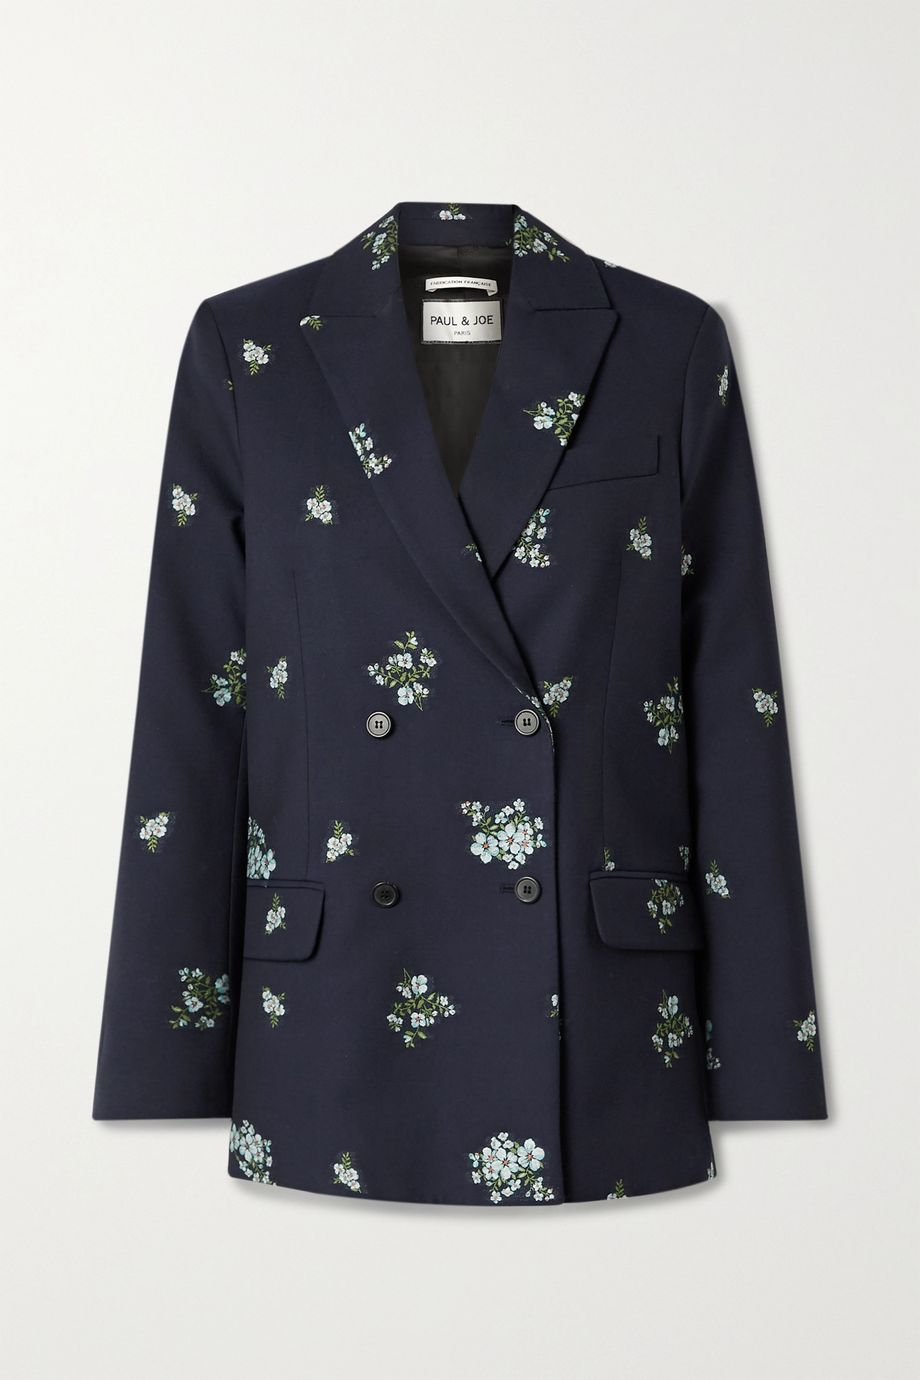 Paul & Joe Costa Rica double-breasted cotton-blend floral-jacquard blazer